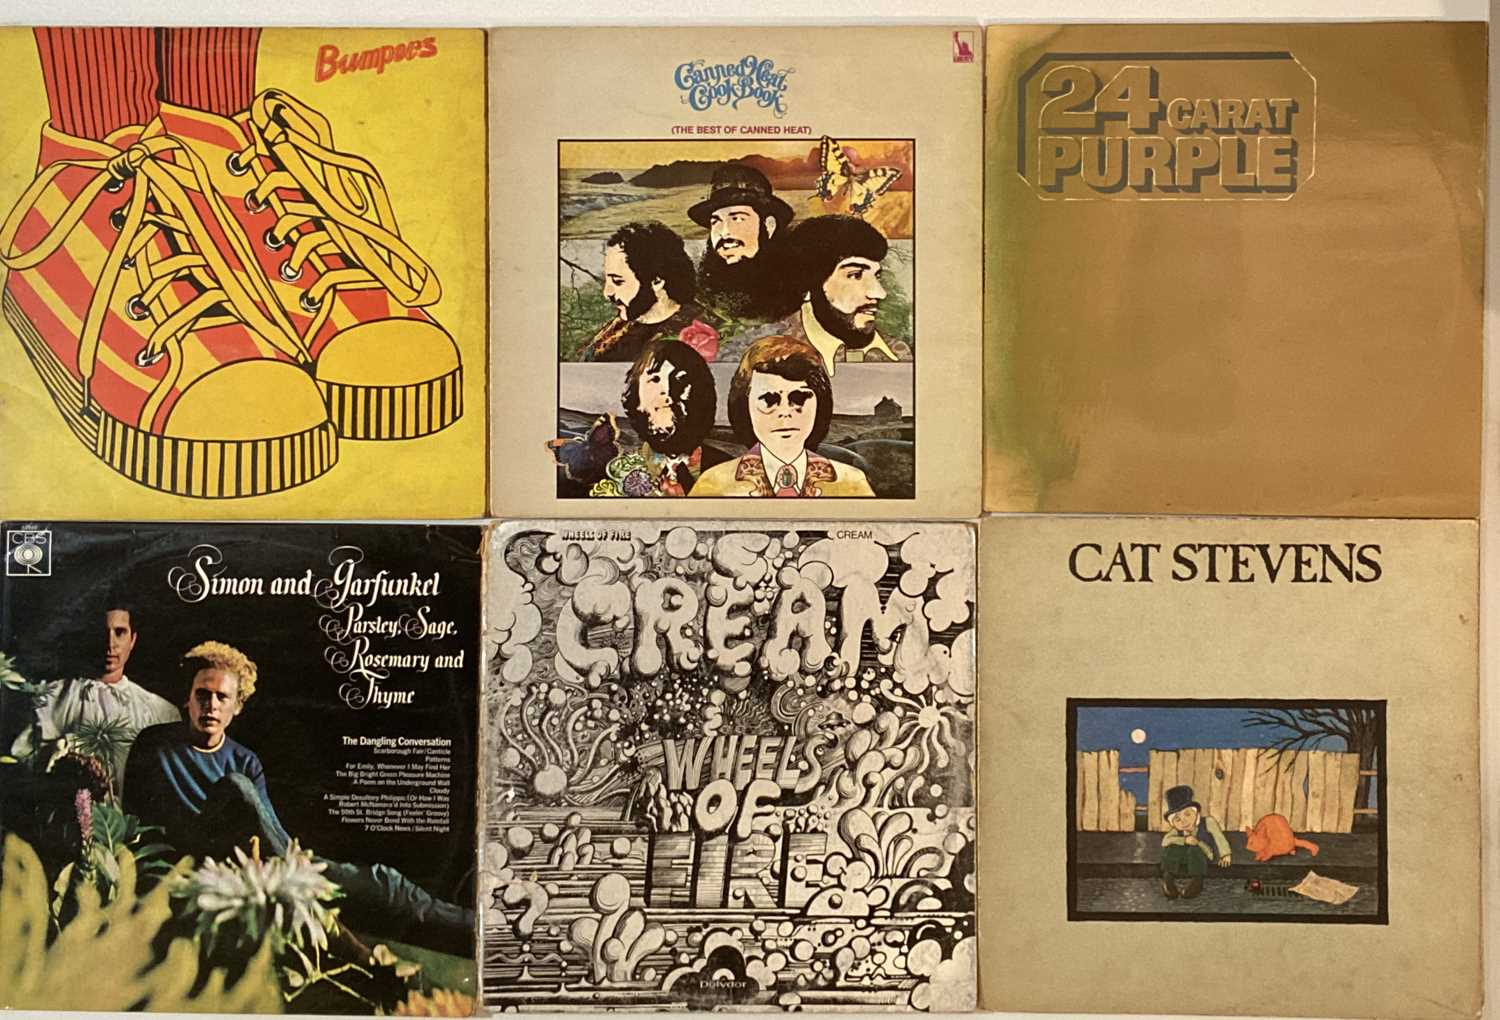 """CLASSIC ROCK AND POP - LPS AND 7"""". - Image 3 of 5"""